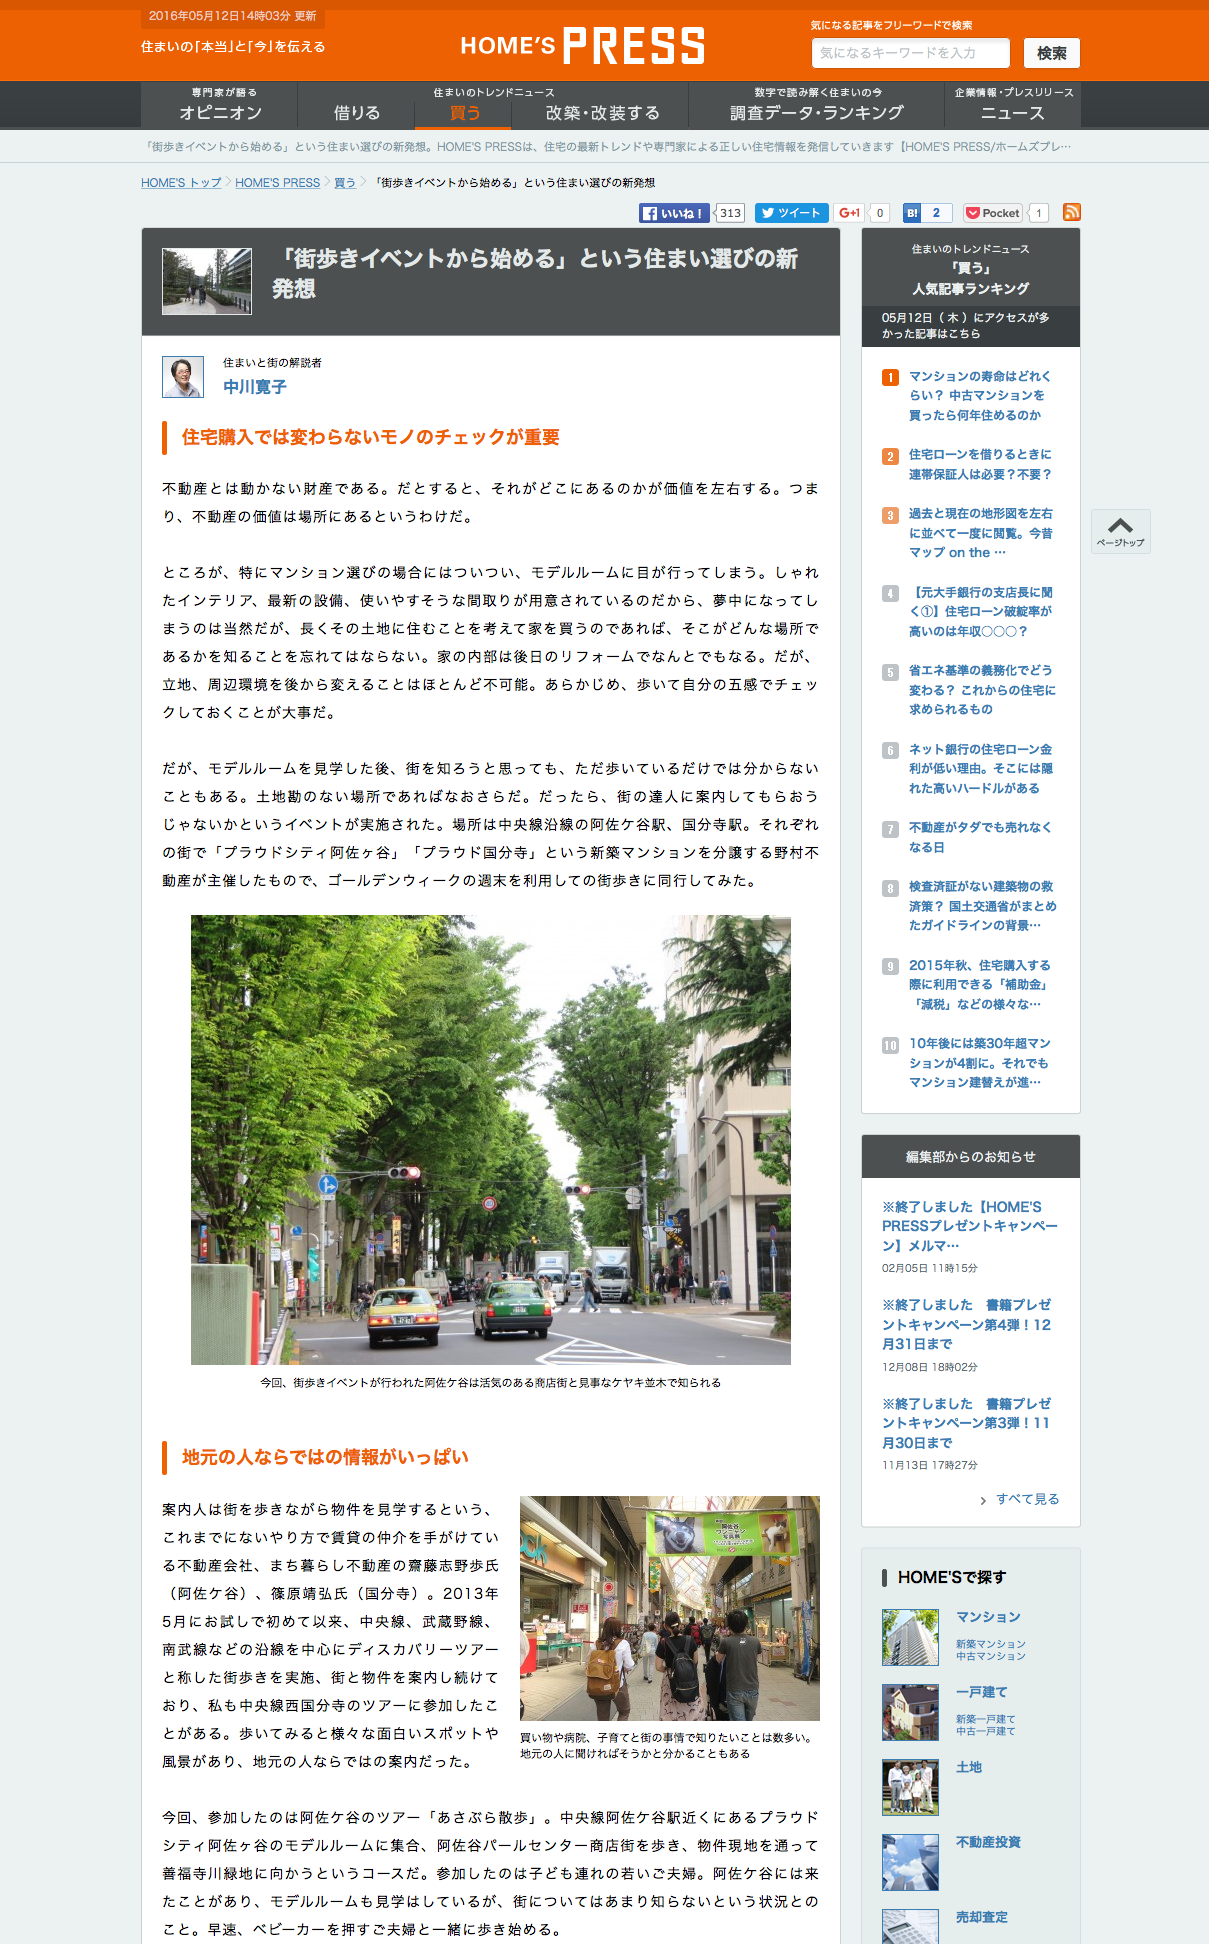 FireShot Capture 17 – 「街歩きイベントから始める」という住まい選びの新発想_ – http___www.homes.co.jp_cont_press_buy_buy_00485_